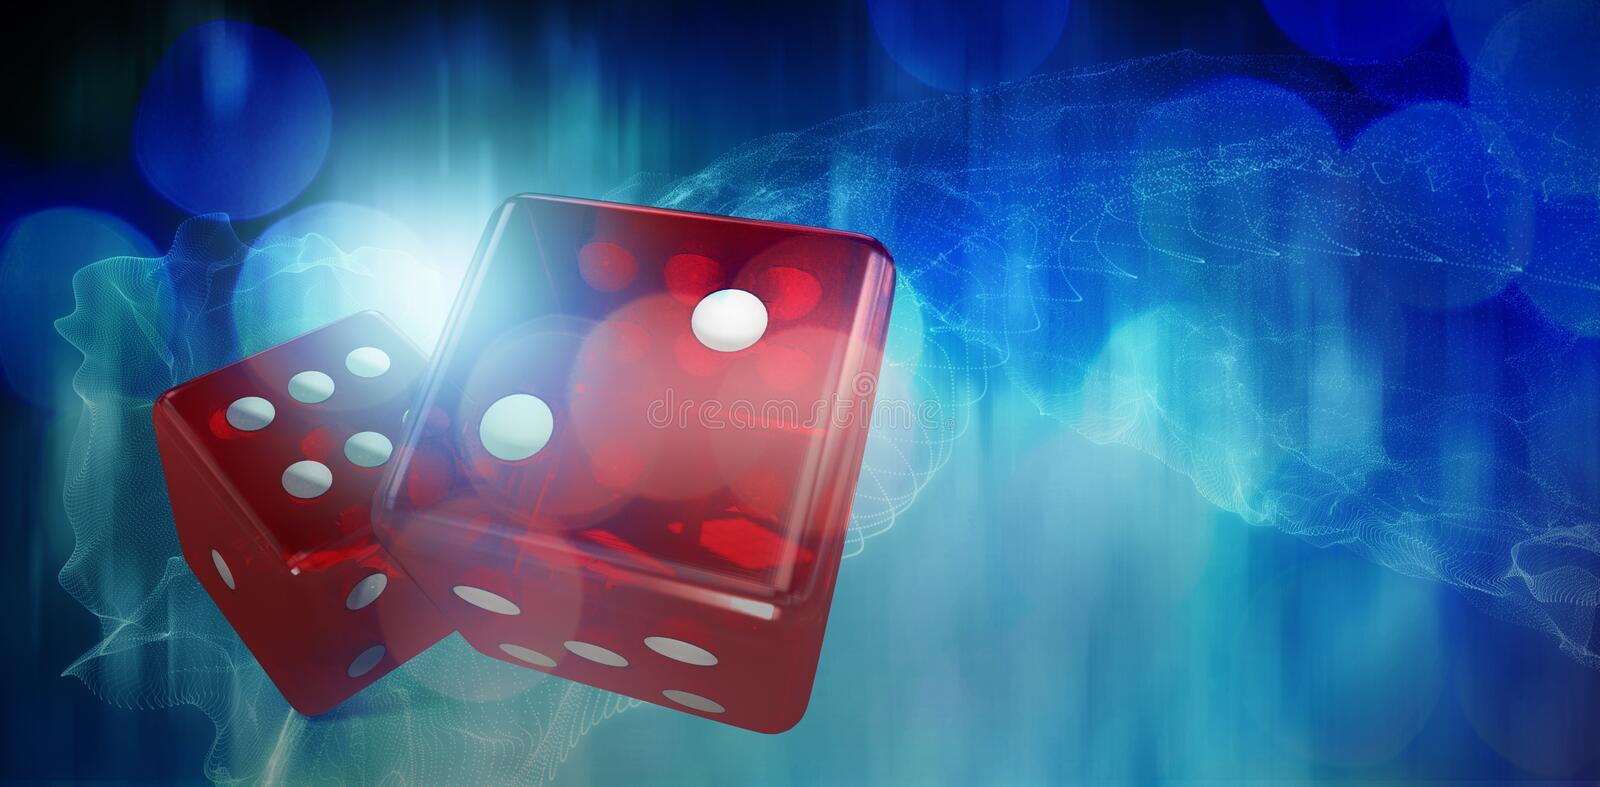 Composite image of digital 3d image of red dice. Digital 3D image of red dice against blue glowing black background stock illustration